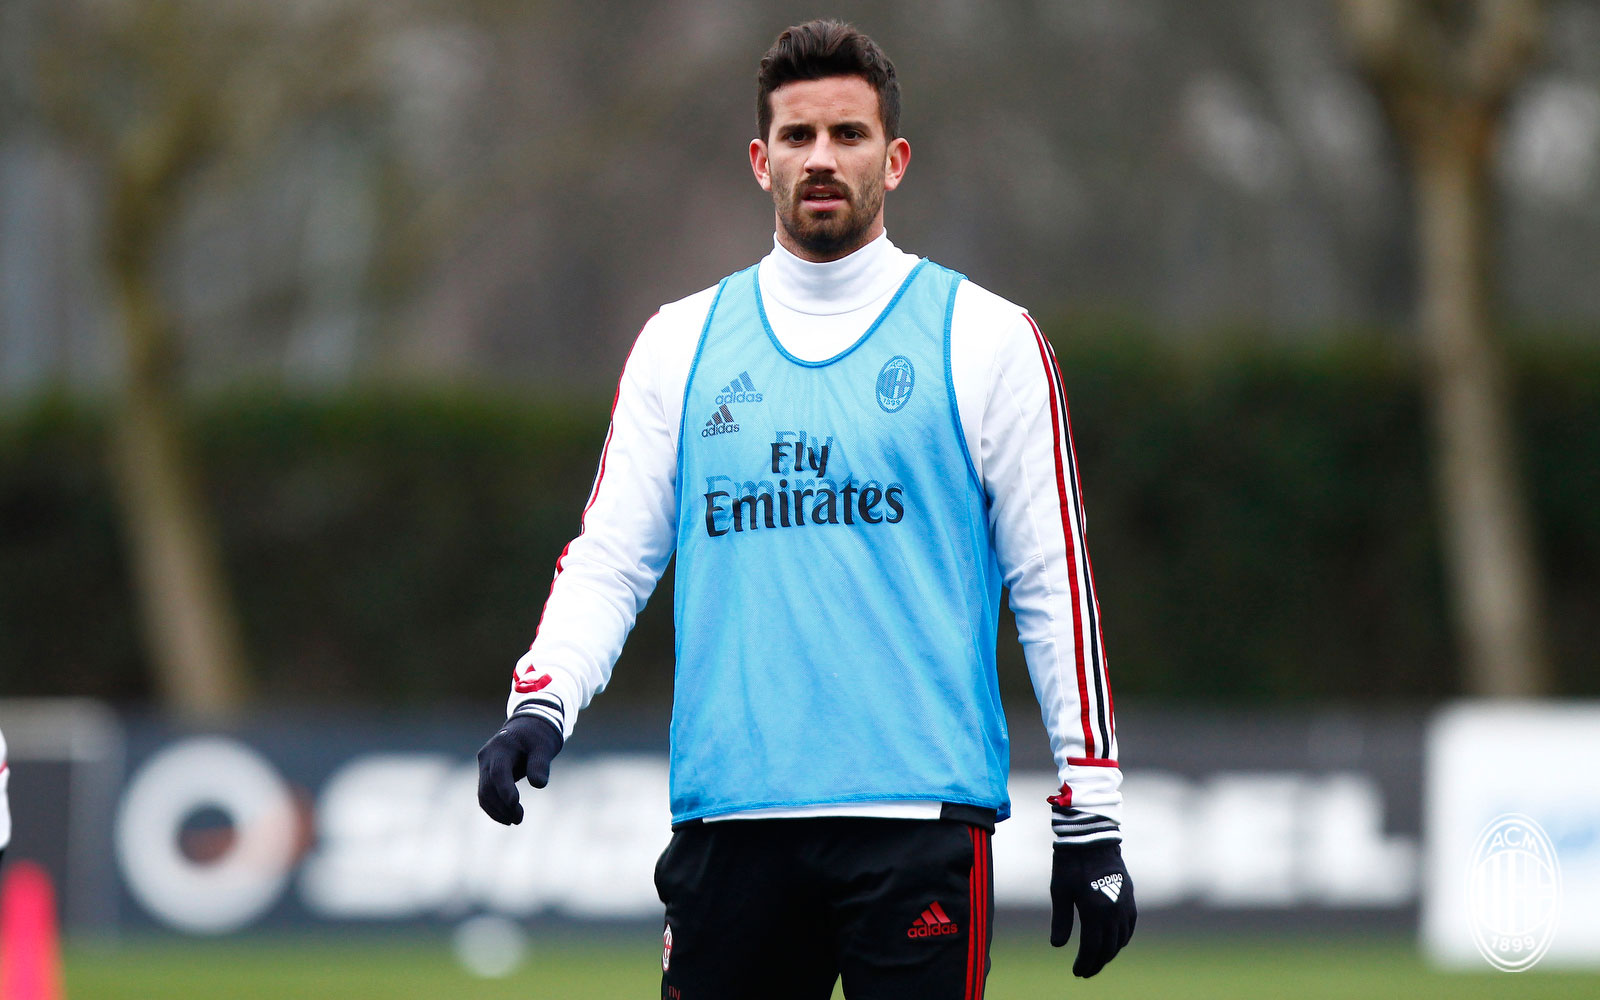 Fulham reportedly make an offer for Musacchio, Milan ...